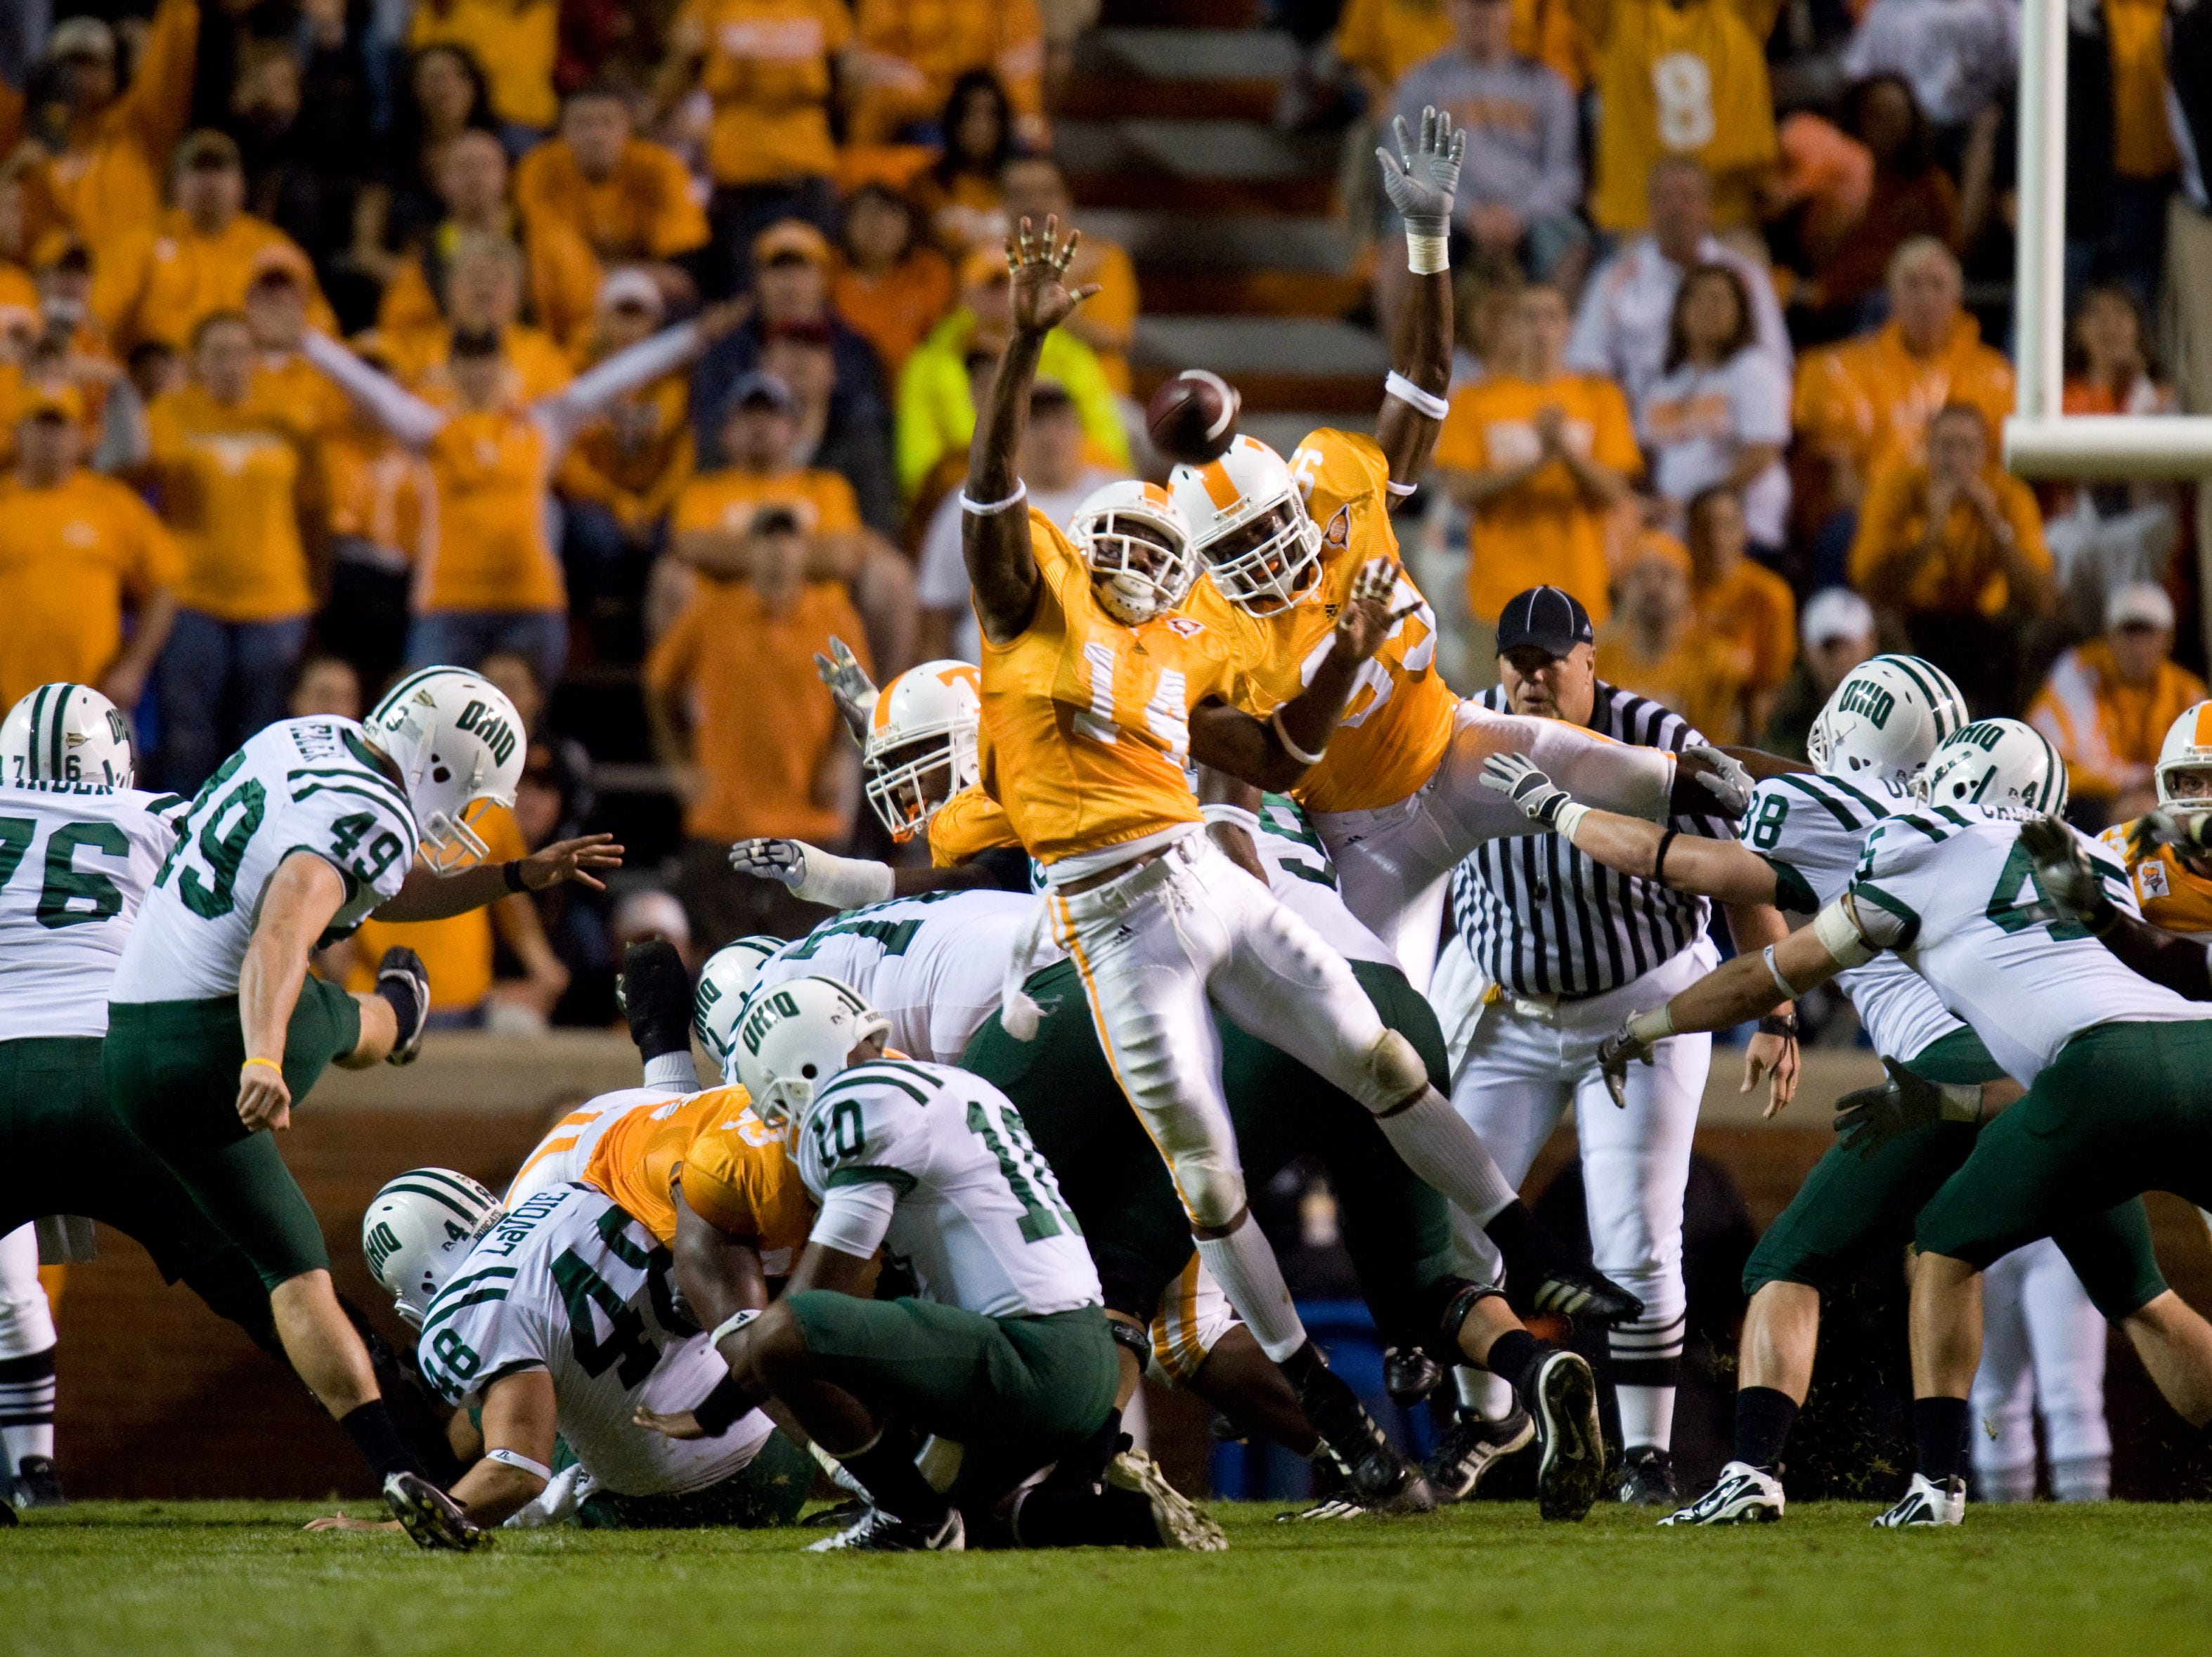 Tennessee special teams players Eric Berry (14) and Ben Martin try to block a field goal attempt by Ohio place kicker Matt Weller on Saturday, Sept. 26, 2009 at Neyland Stadium. The Vols evened their record to 2-2 with a 34-23 win.